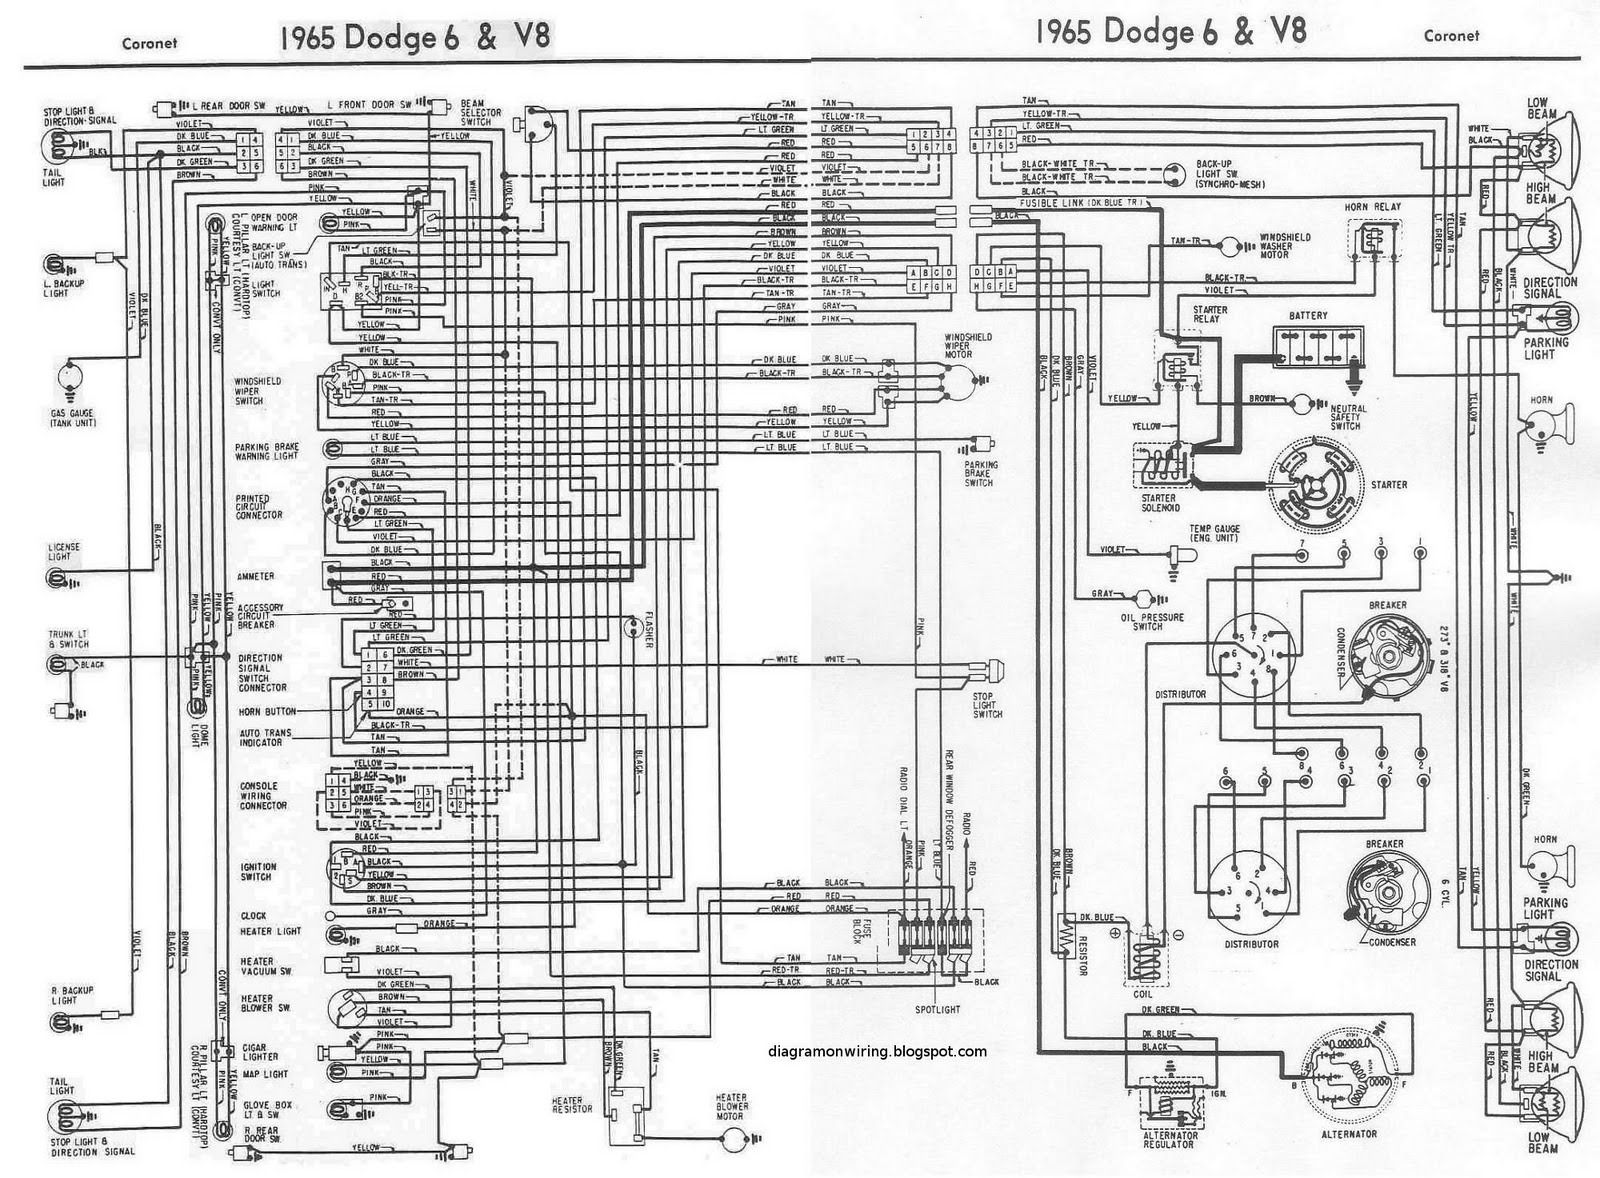 66 dodge headlight switch wiring diagram free image wiring diagram1966 dodge wiring diagram wiring diagram schema [ 1600 x 1178 Pixel ]